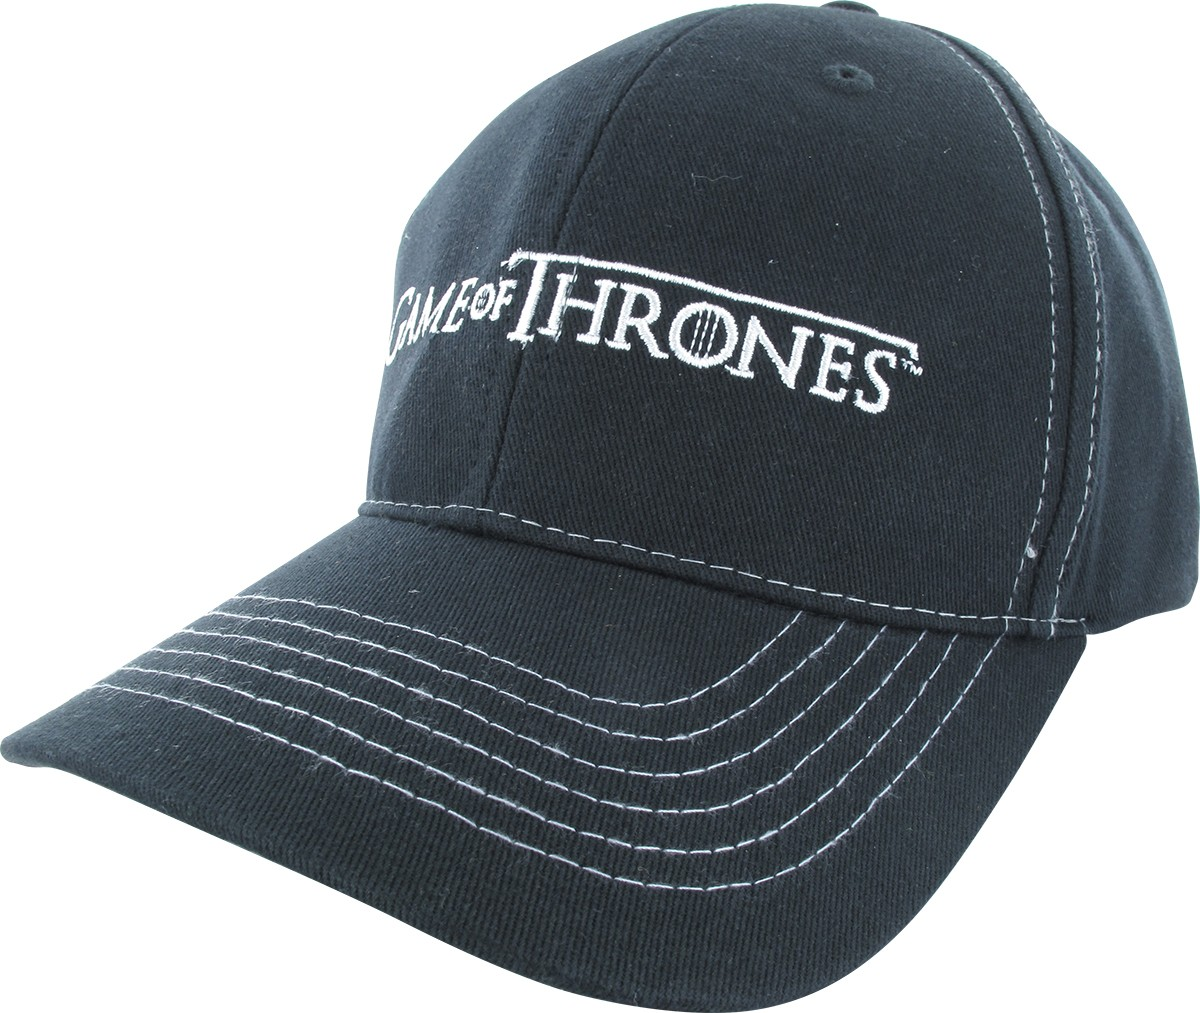 Buckle Hats: Game Of Thrones Name Map Under Bill Buckle Hat